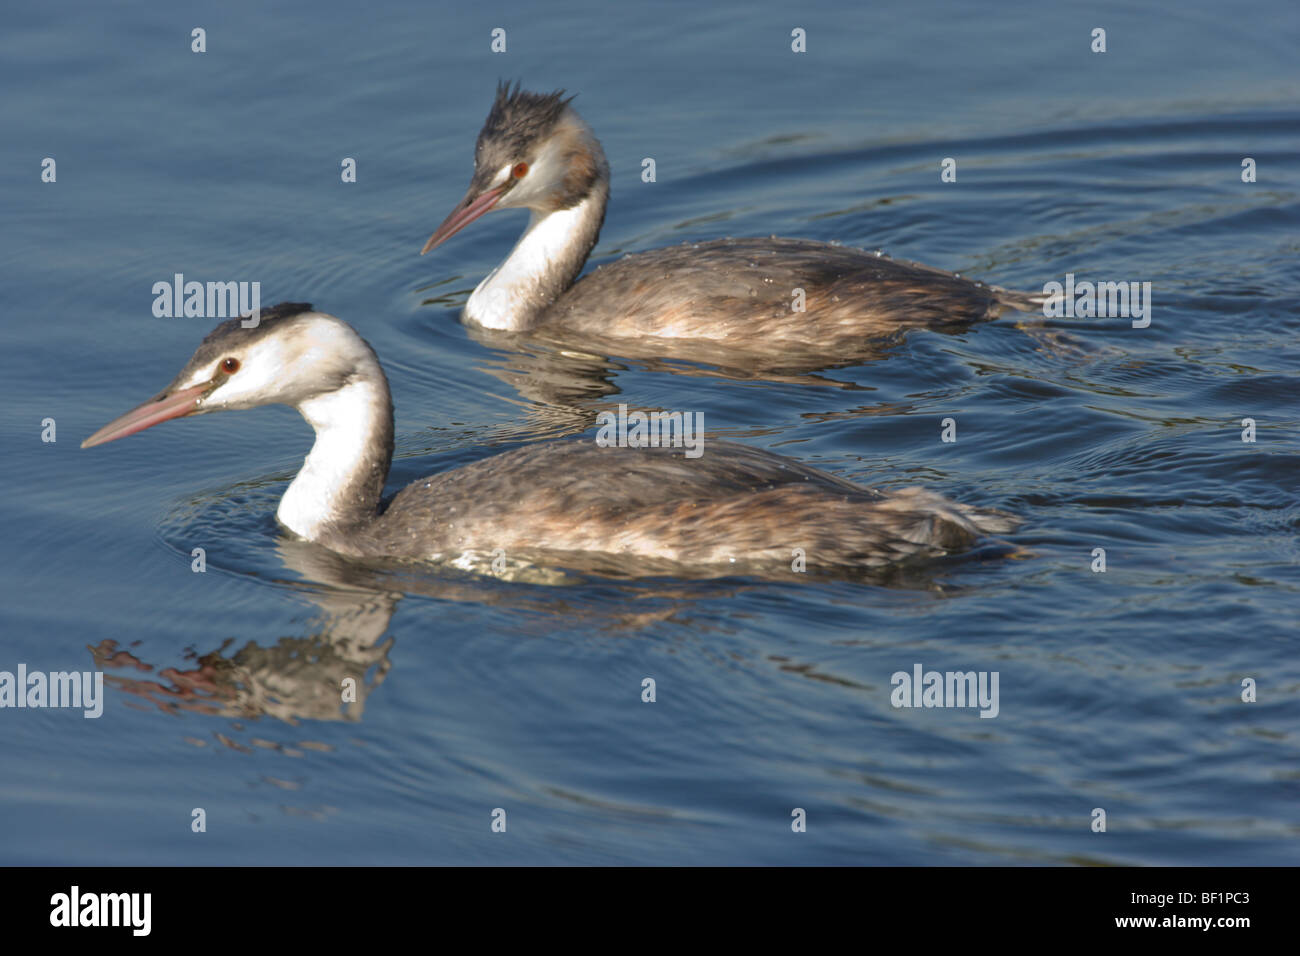 Two Great Crested Grebes, Podiceps cristatus, swimming together - Stock Image